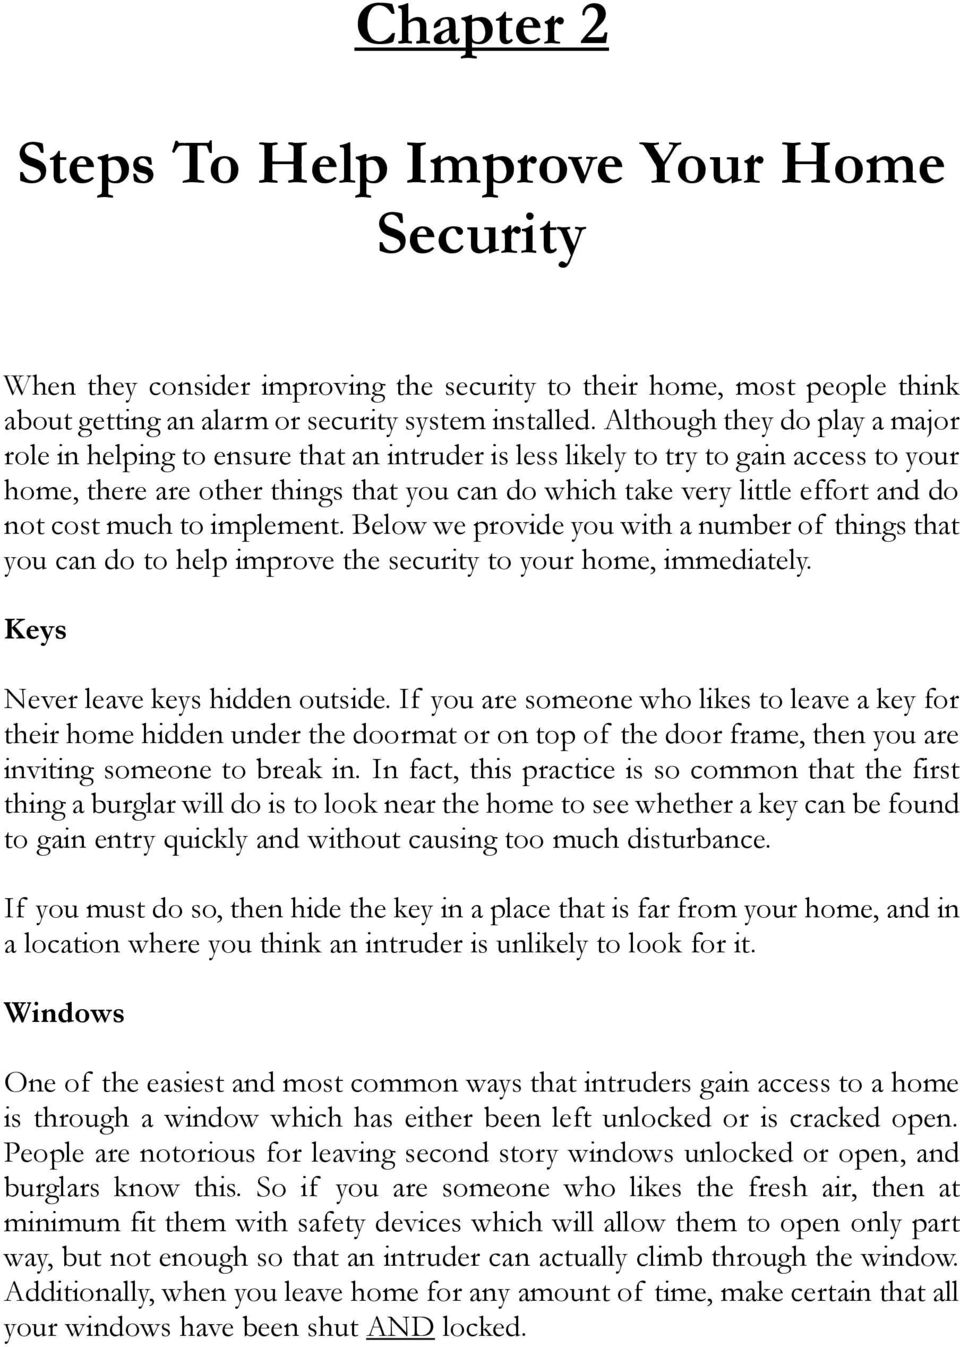 not cost much to implement. Below we provide you with a number of things that you can do to help improve the security to your home, immediately. Keys Never leave keys hidden outside.